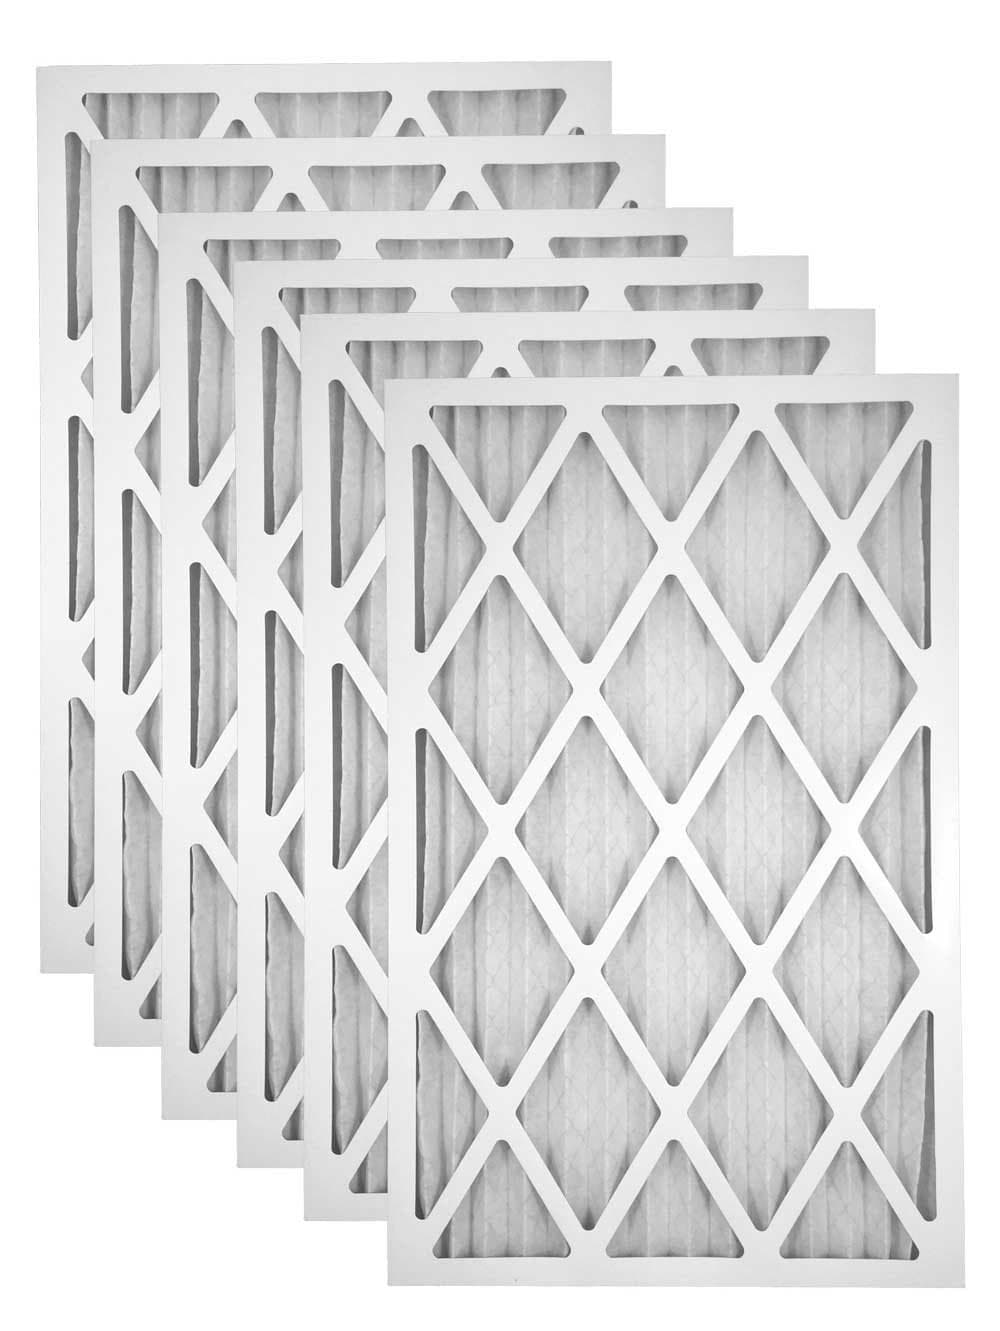 Atomic 12x20x2 MERV 11 Pleated Geothermal Furnace Filter - Case of 6